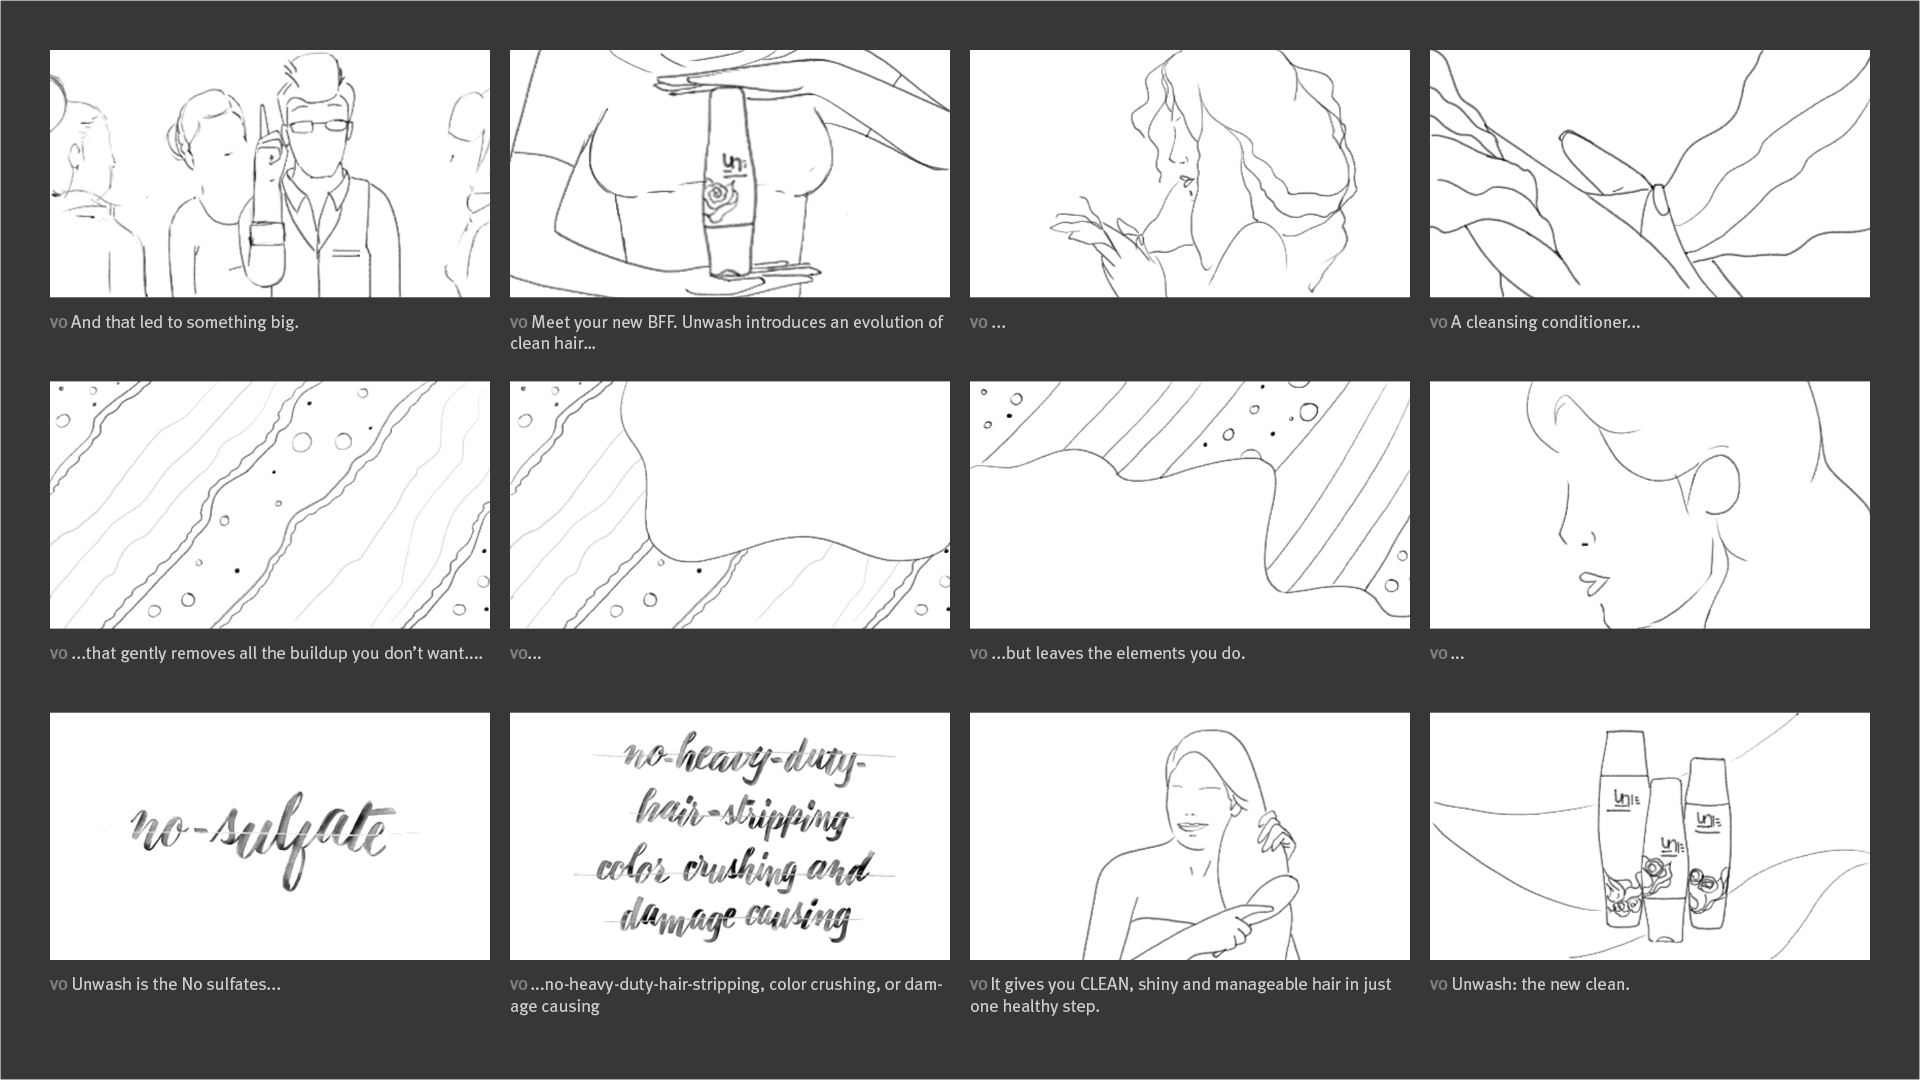 Unwash - The New Clean Storyboard 03